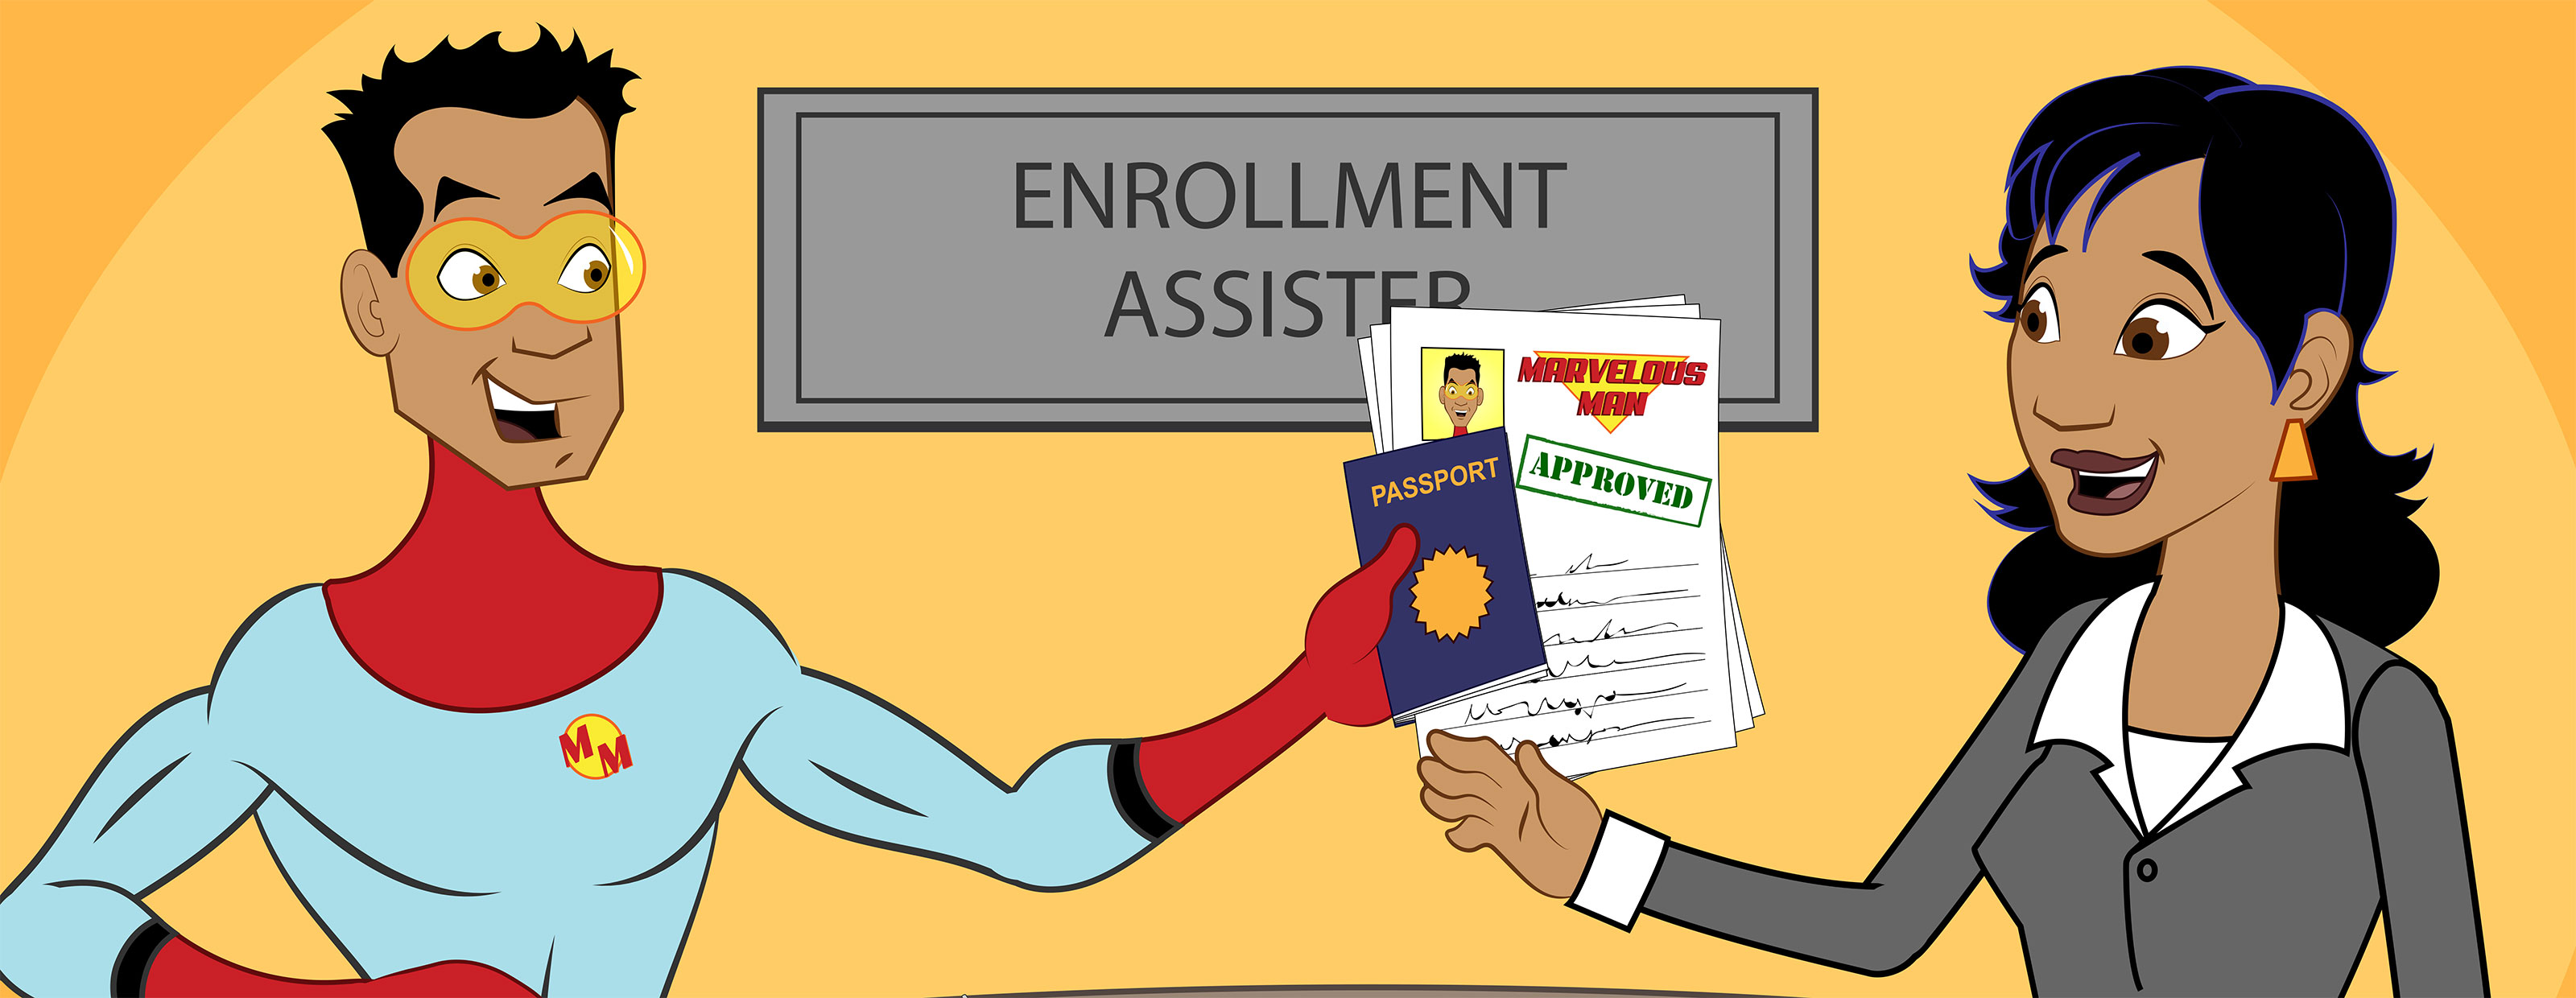 Enrollment-Process-Header